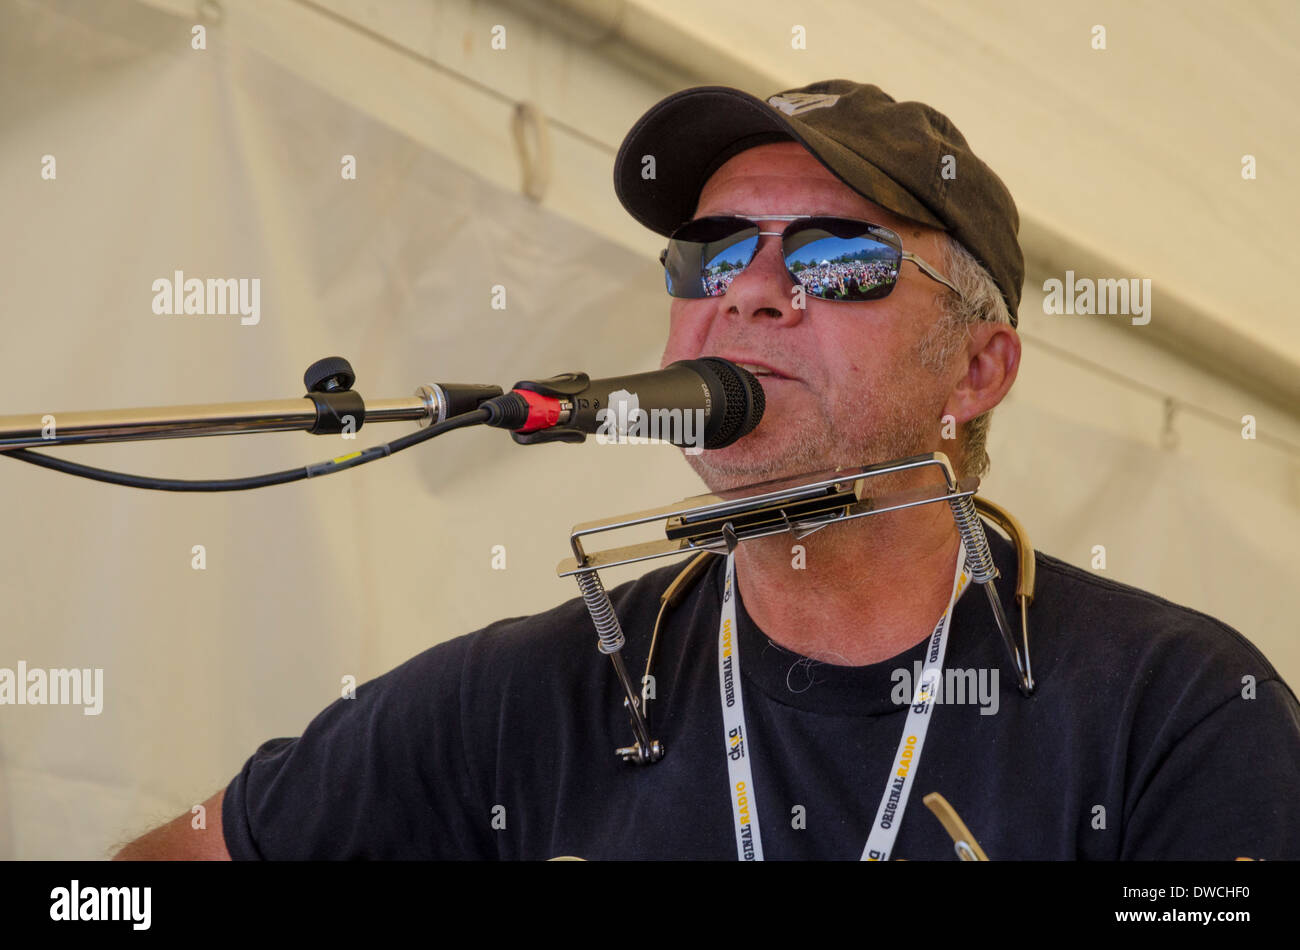 Singer, songwriter Murray Mclauchlan performs at the Canmore Folk Music Festival, Alberta, Canada - Stock Image